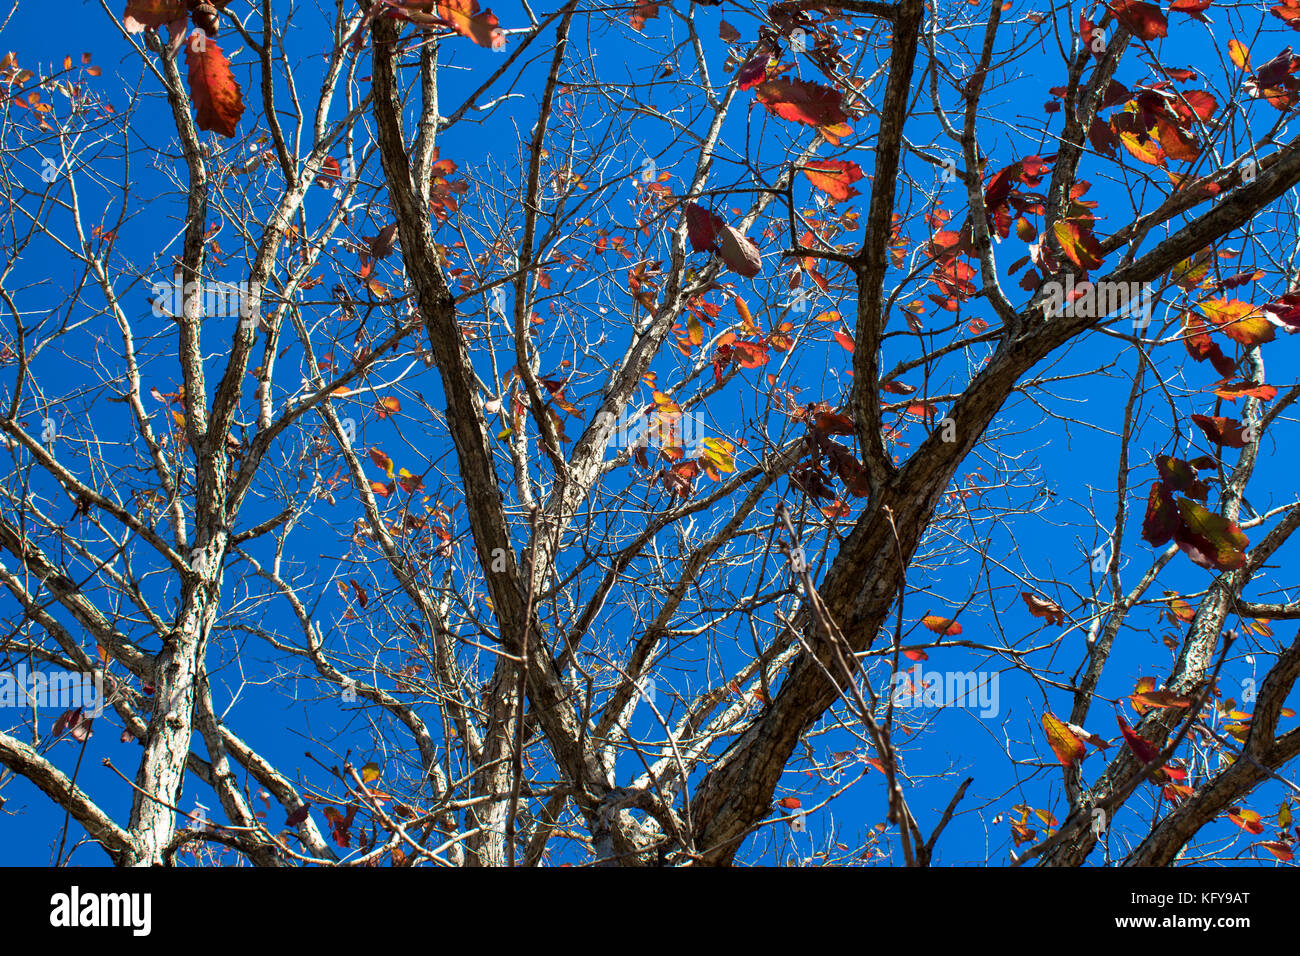 Leaves falling from tree in autumn - Stock Image